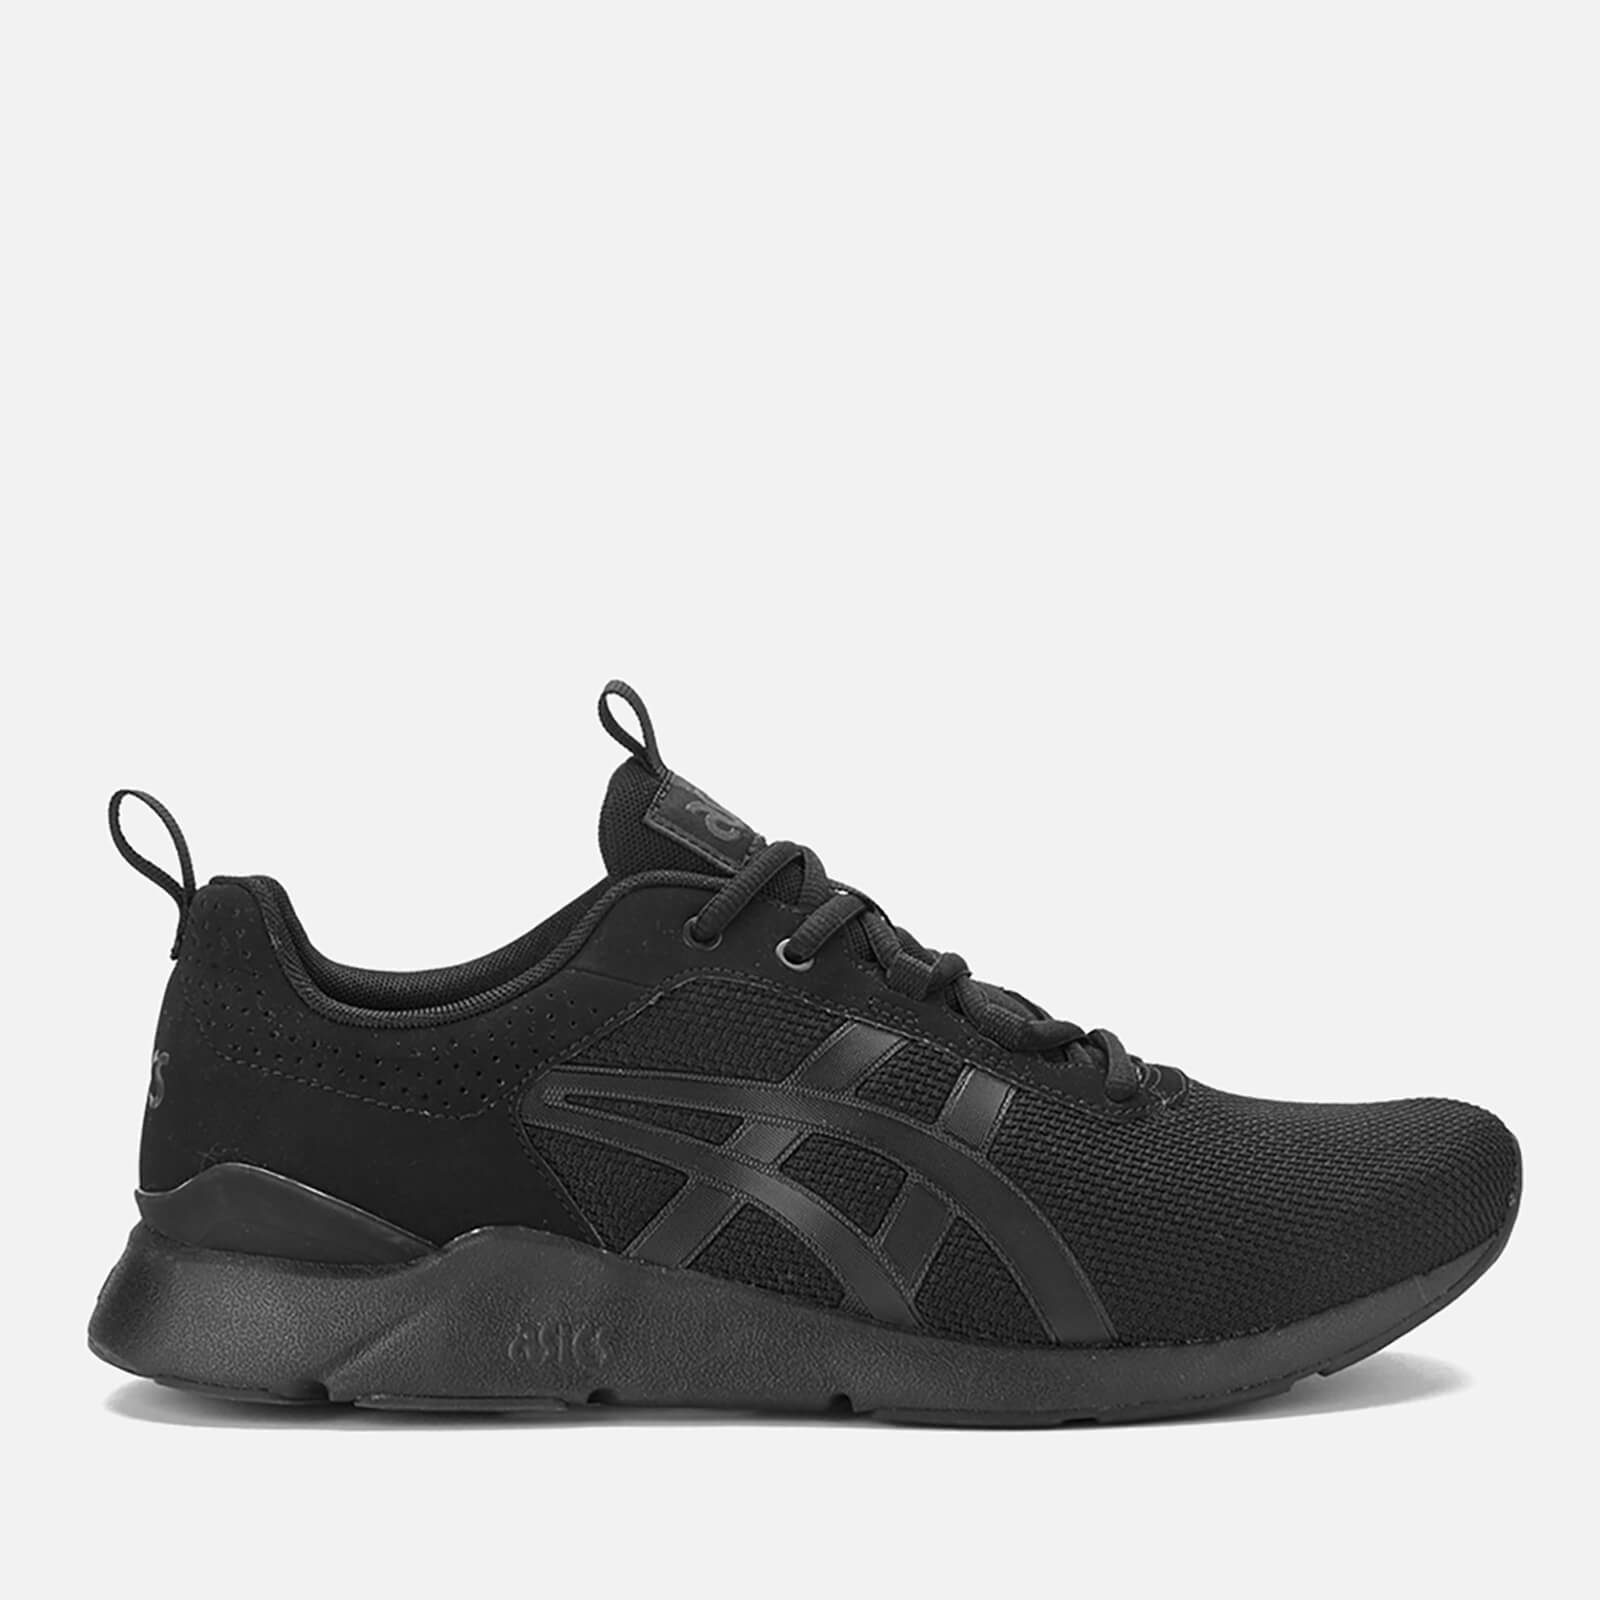 aca28d58a3c4 Asics Lifestyle Gel-Lyte Runner Trainers - Black - Free UK Delivery over £50